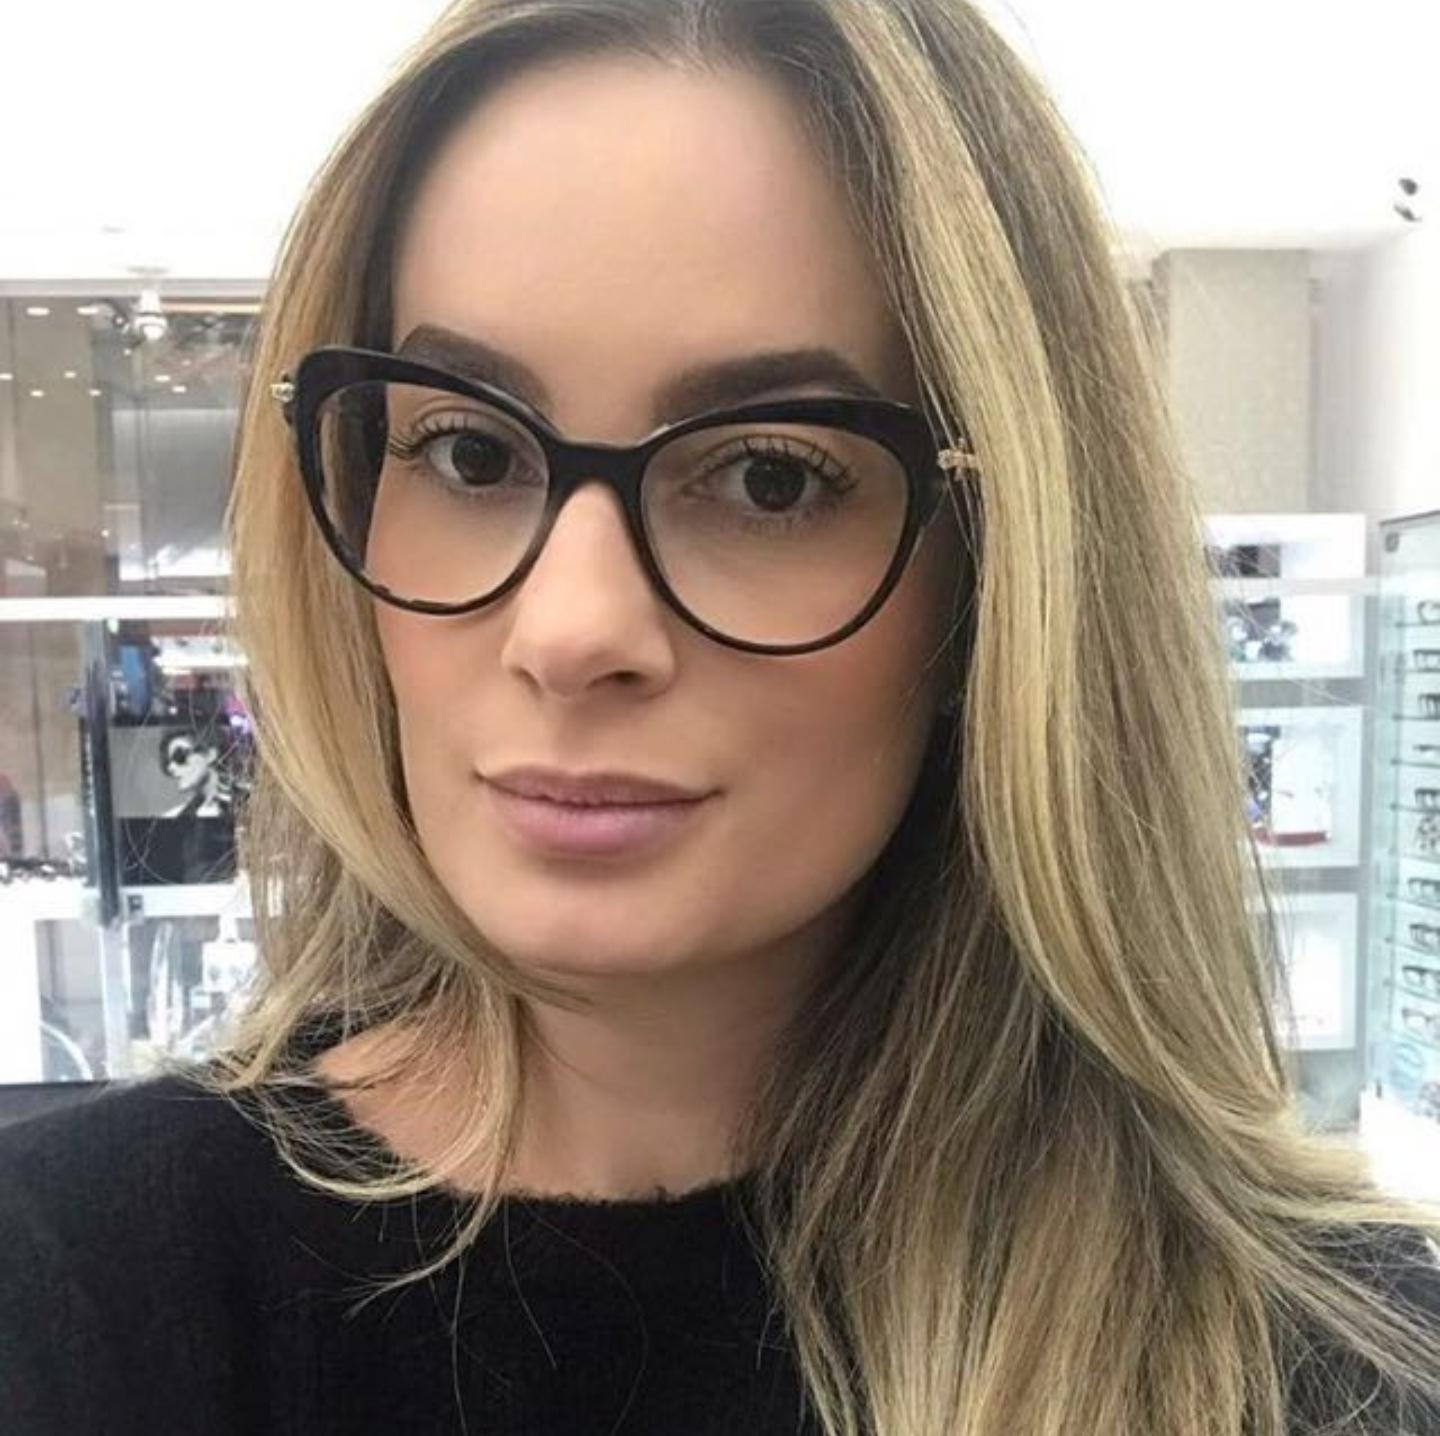 a192c6df0ec Han Edition Tide Restoring Ancient Ways Round Face Glass Frame Female  Character Super Light Can Match Myopic Eyes Big Face Show Thin Flat  Flexible Eyeglass ...